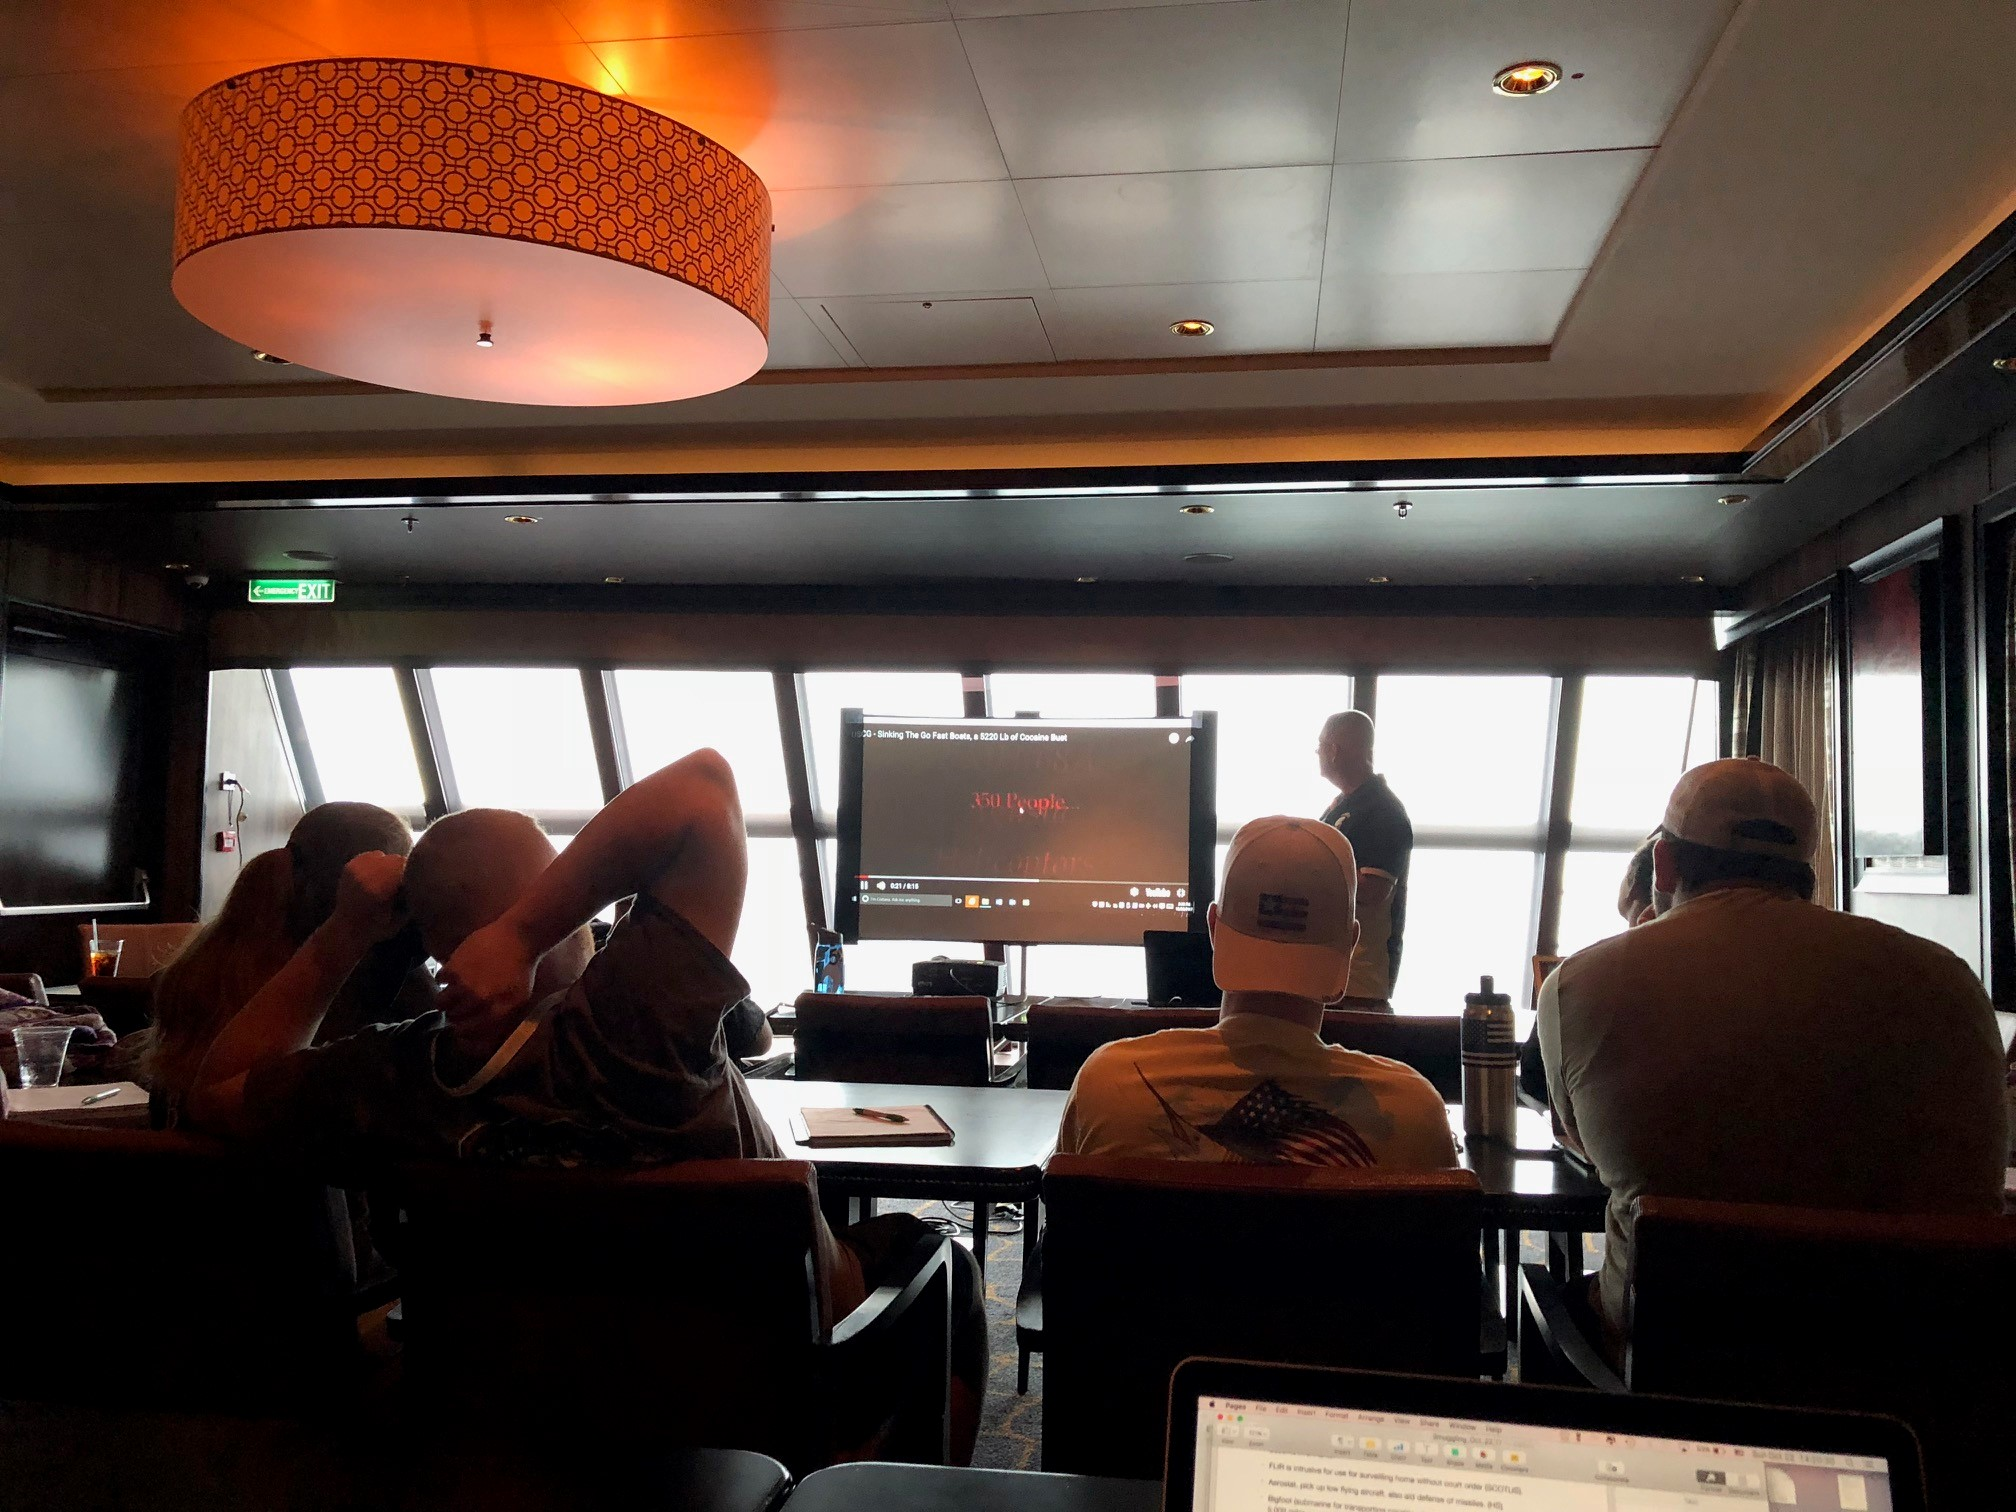 An onboard lecture during a day at sea on the cruise